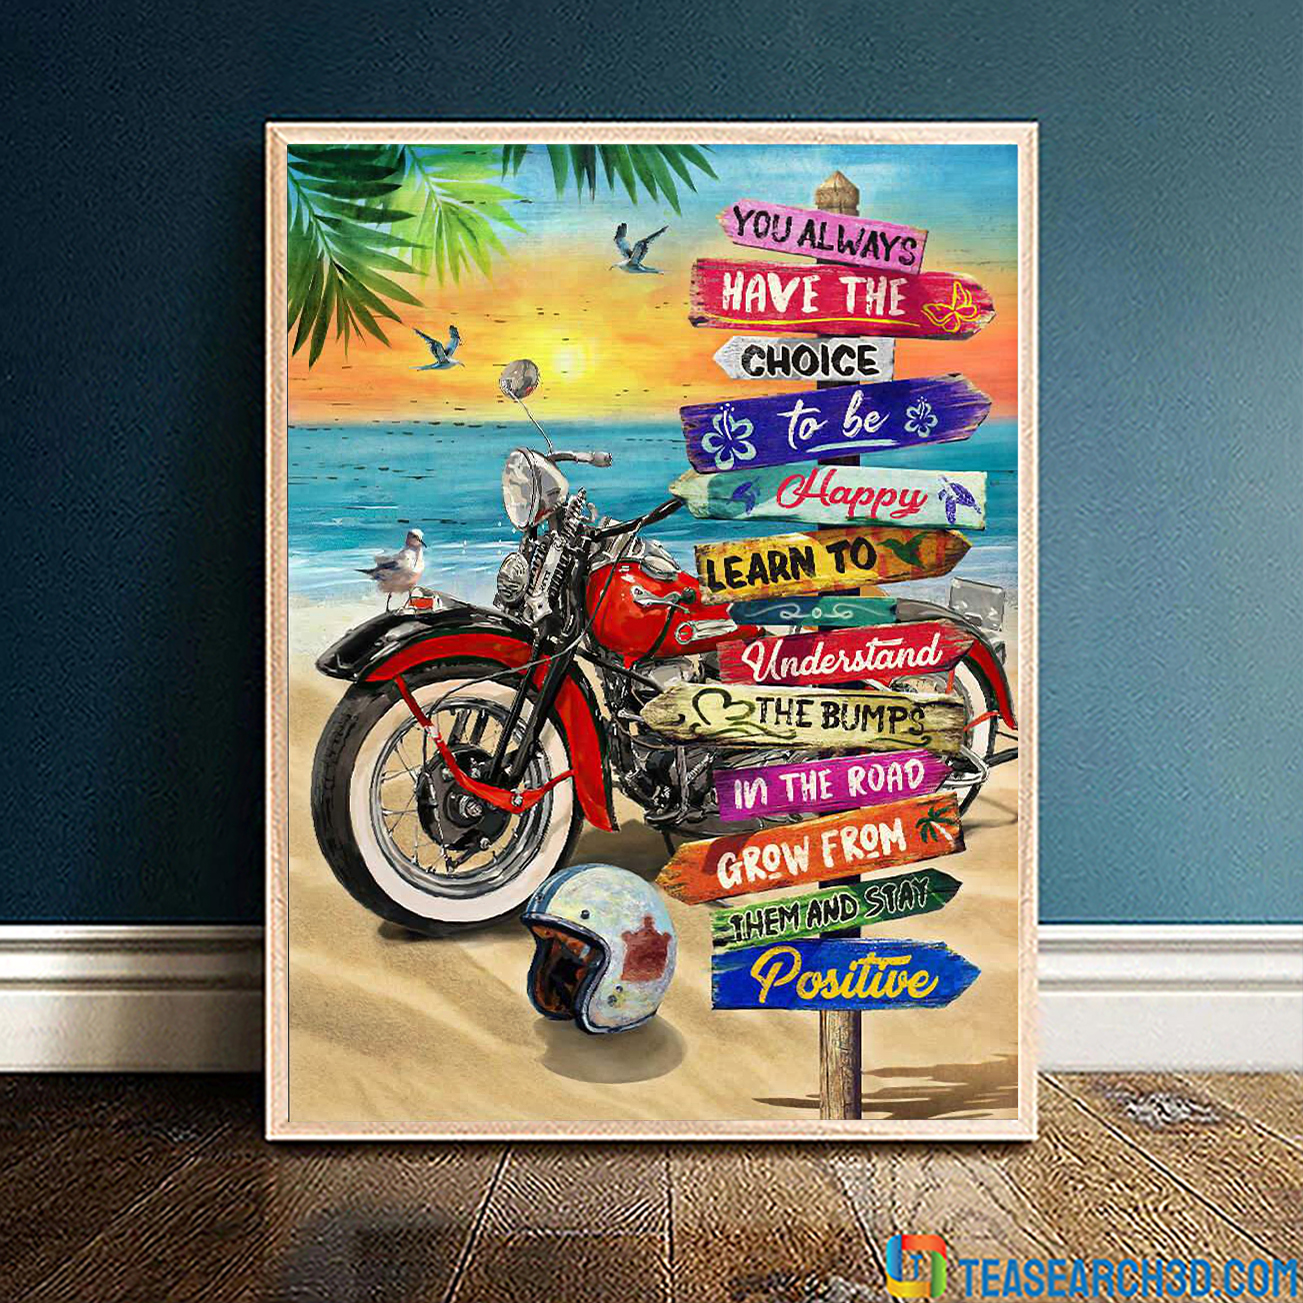 Summer beach harley davidson motorcycle you always have the choice poster A3